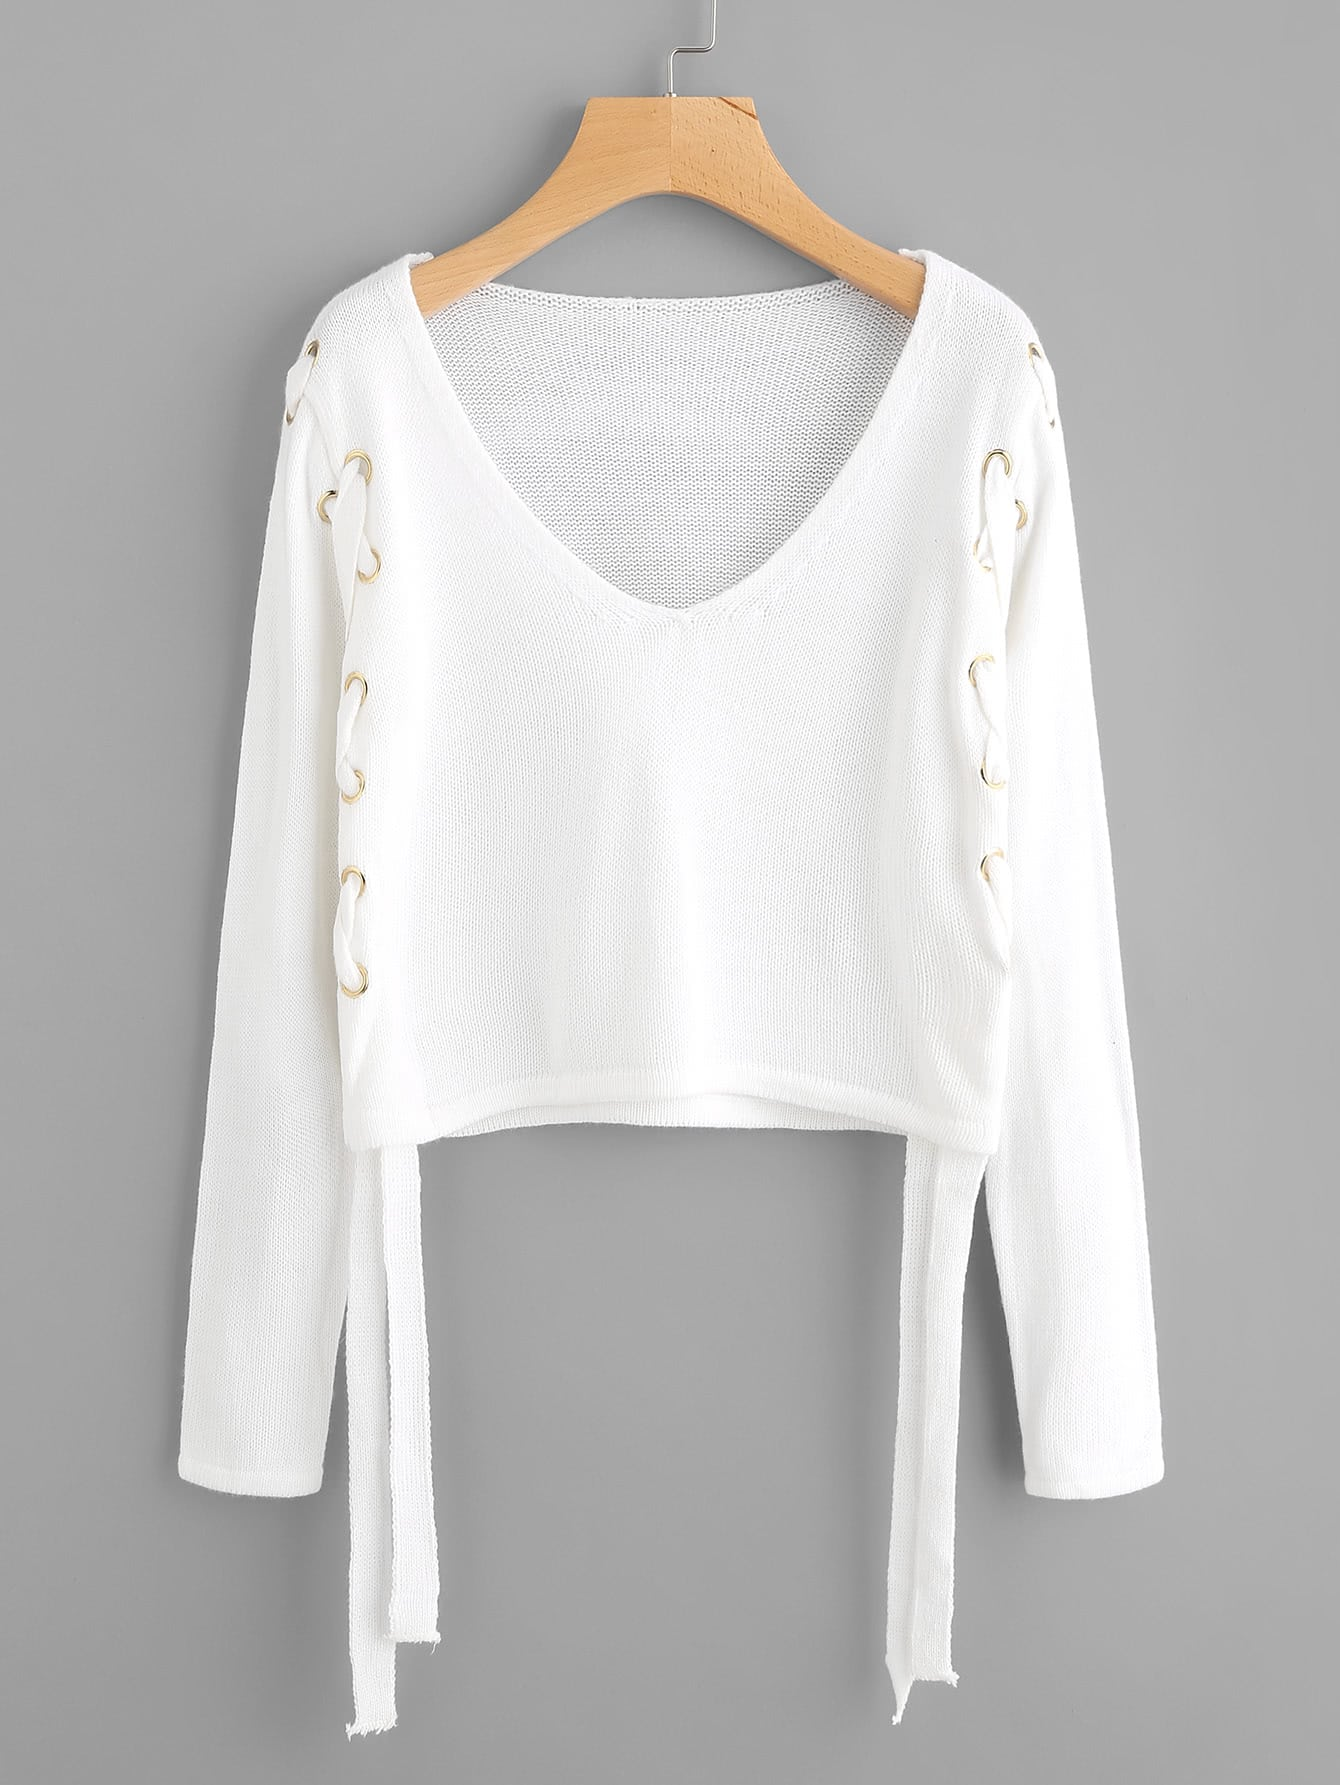 Grommet Lace Up Side Crop Sweater